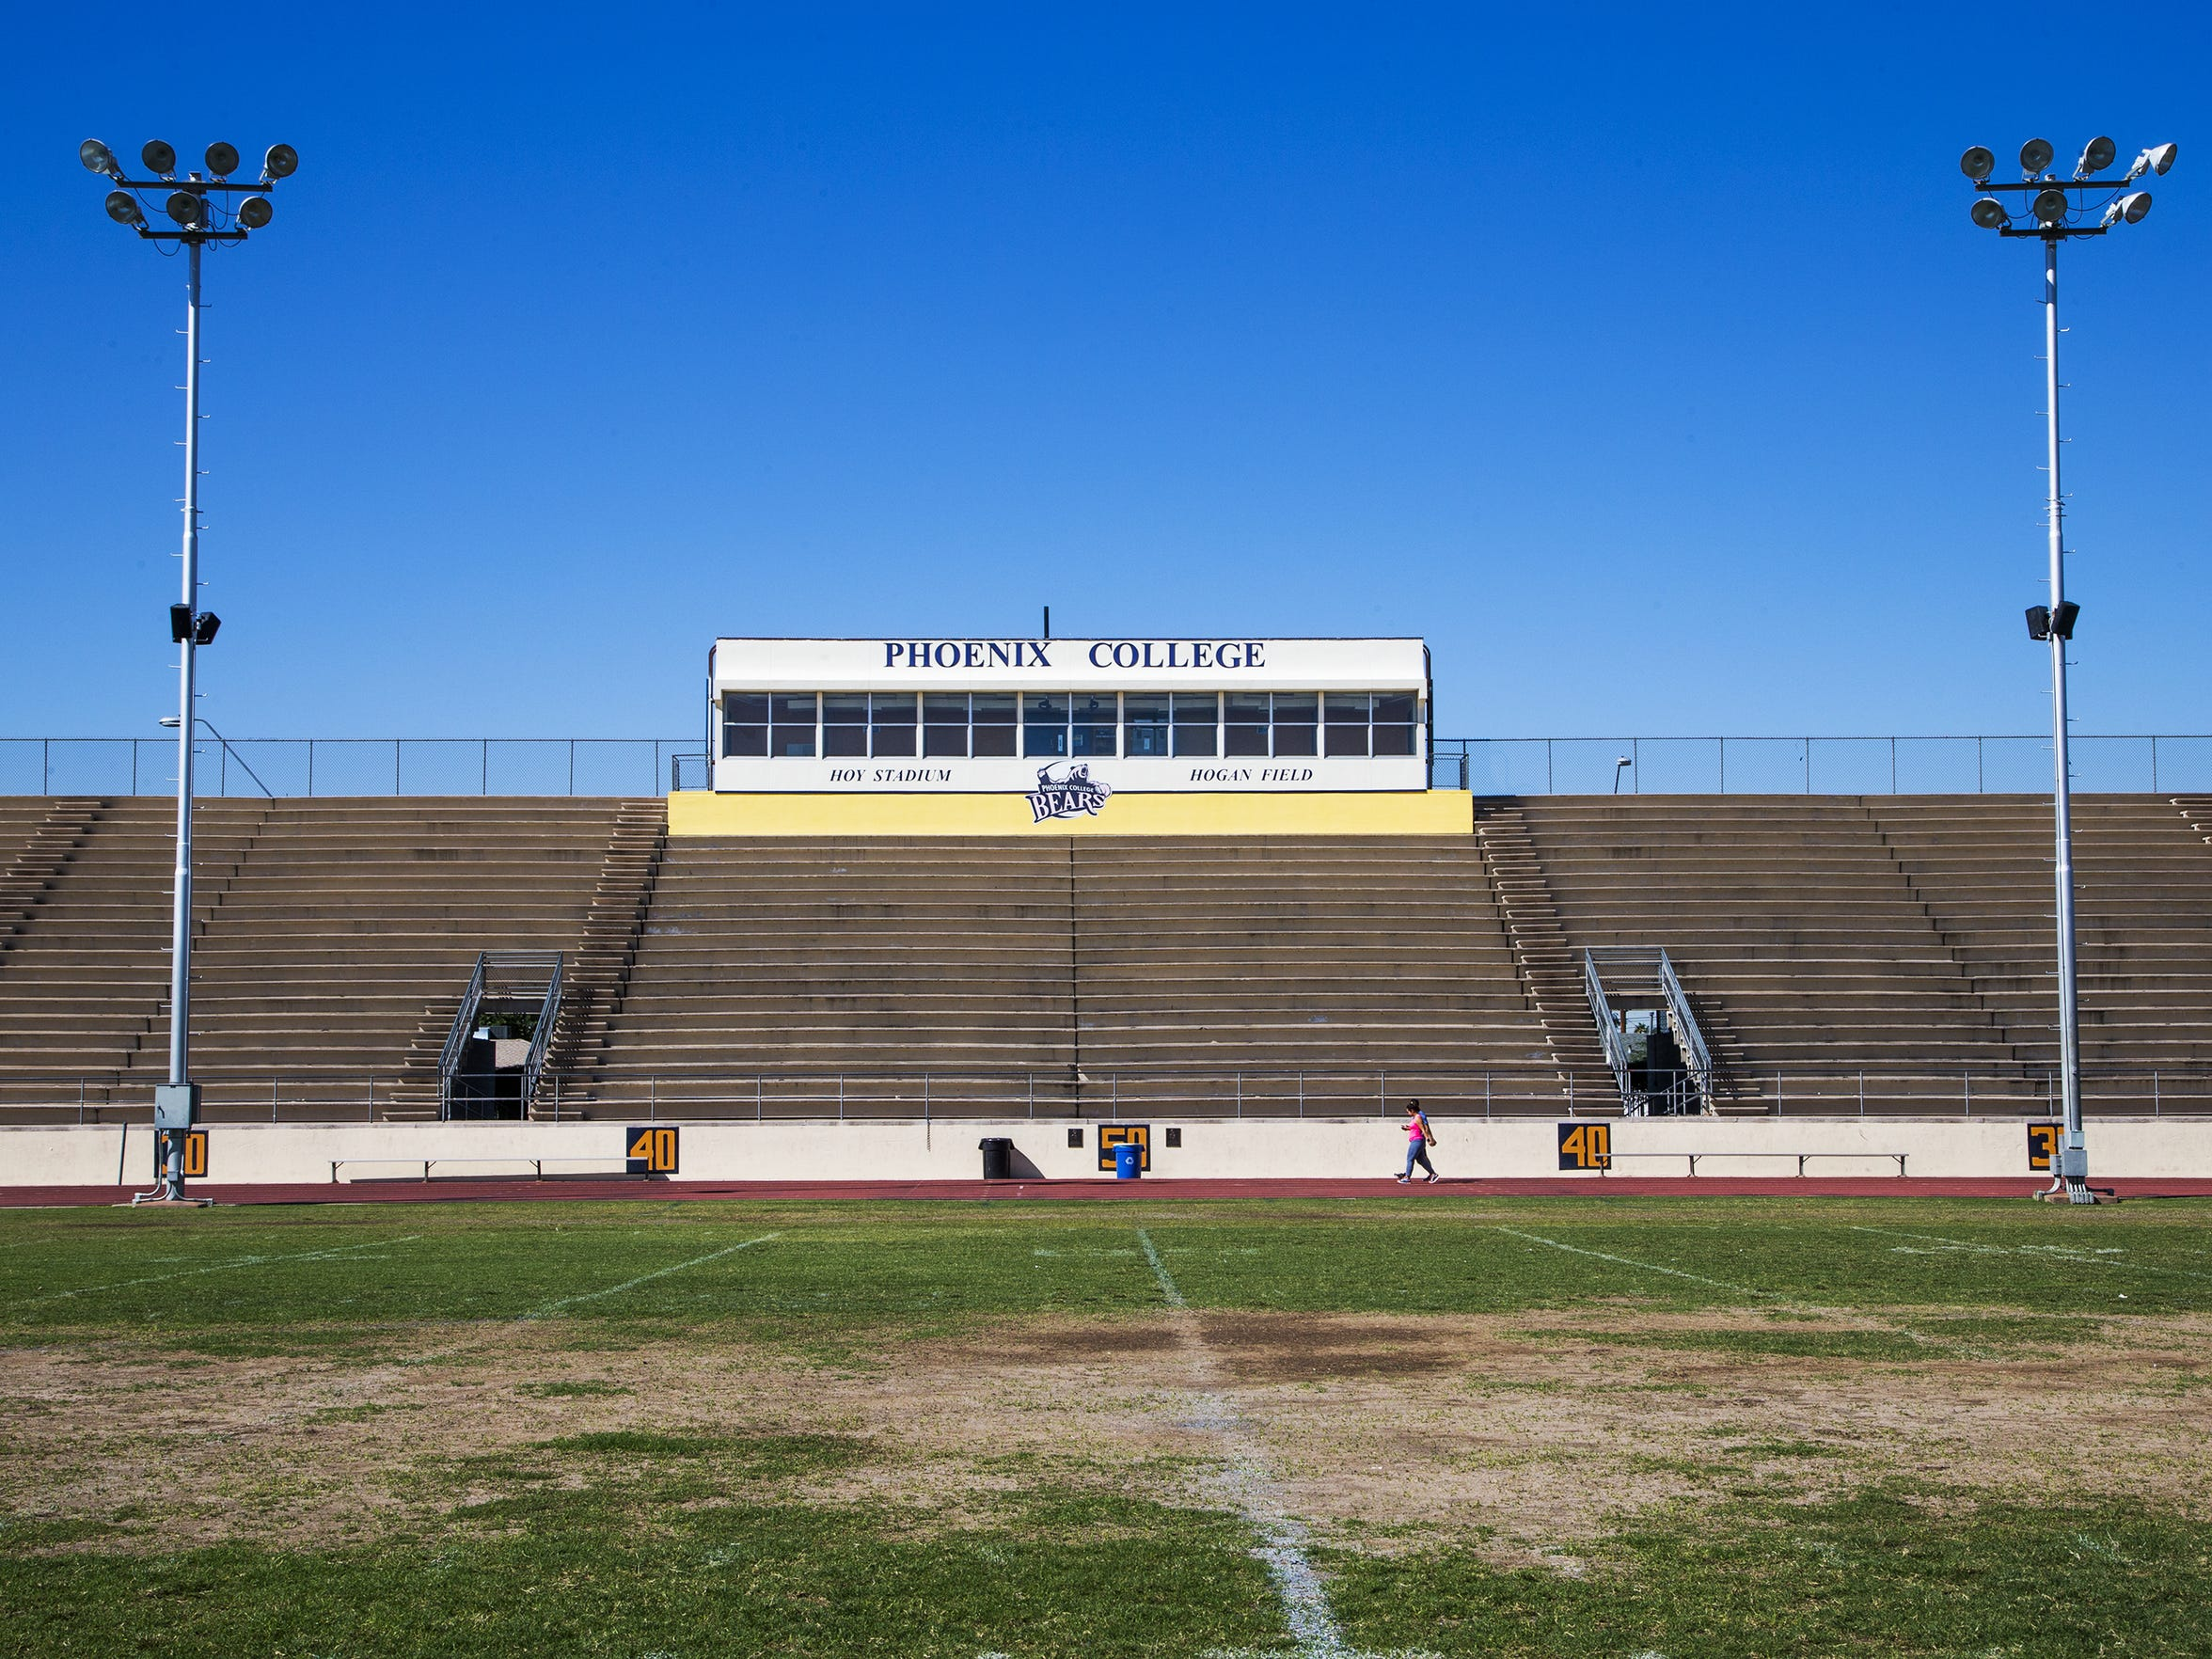 """""""We want to be a Phoenix school,"""" Phoenix College associate coach Robin Pflugrad said. """"We want to be the program that rises from the ashes."""""""